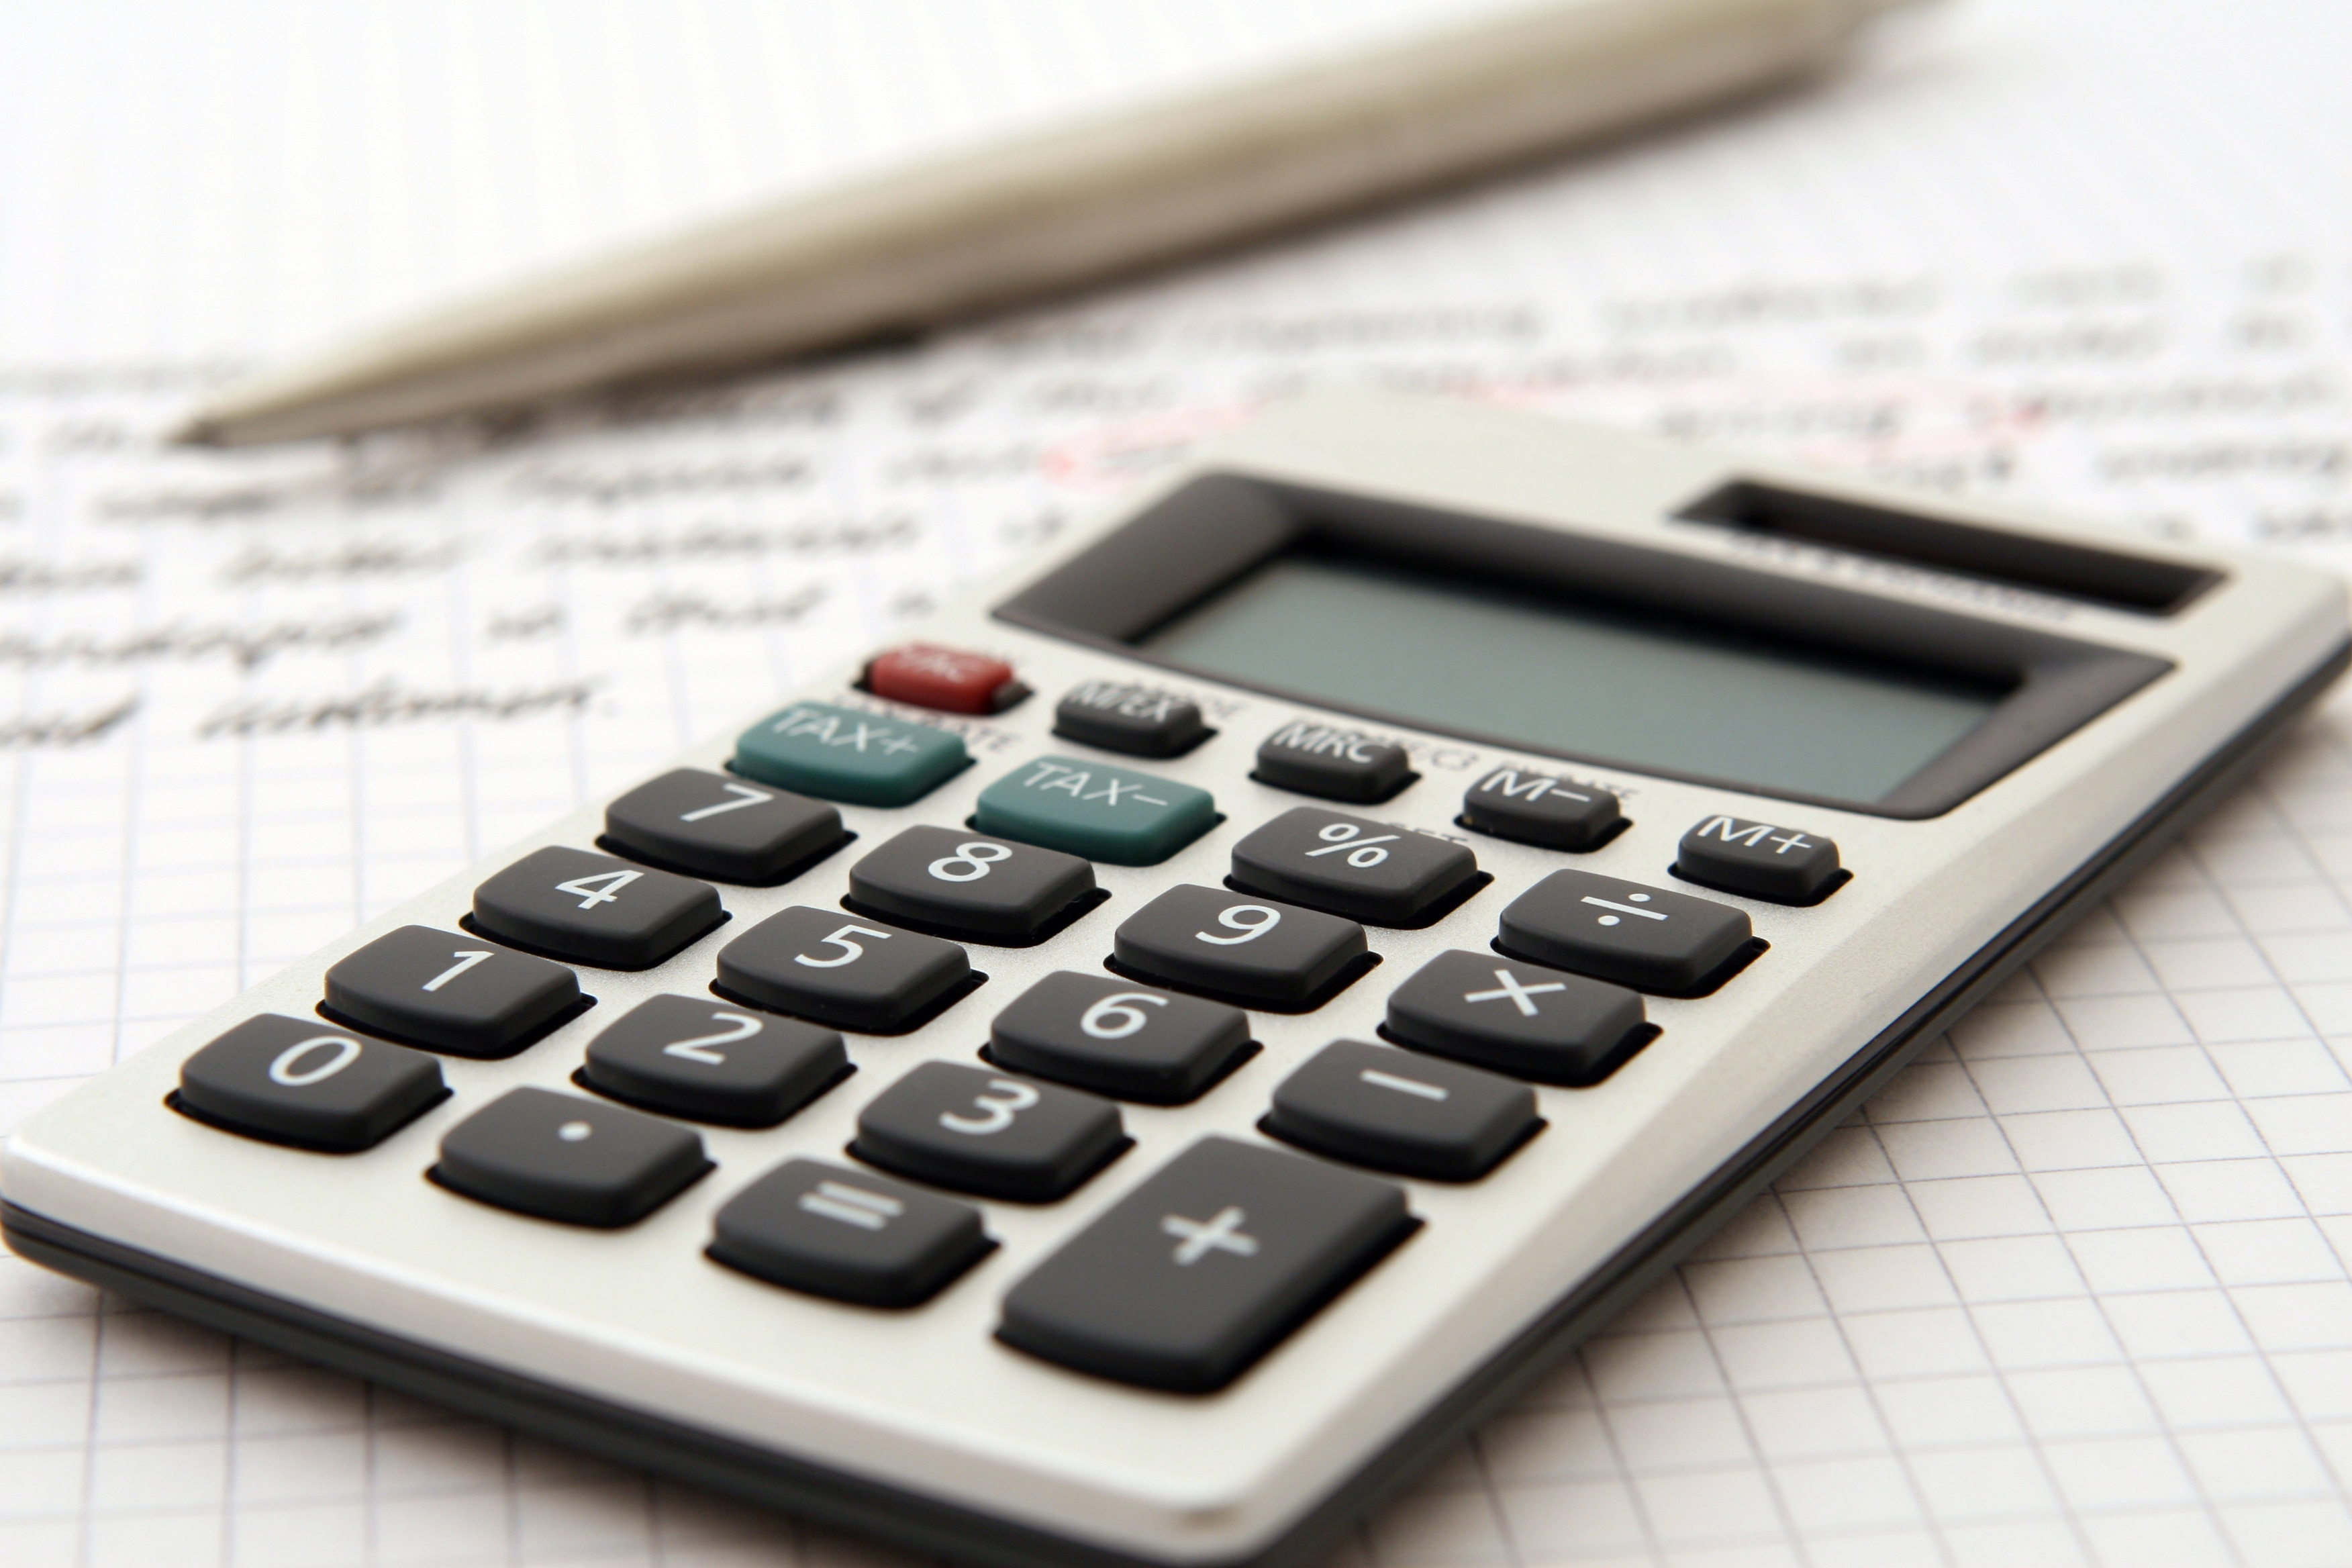 A calculator, pen, and paper convey the need to assess one's personal finances when considering saving for college.